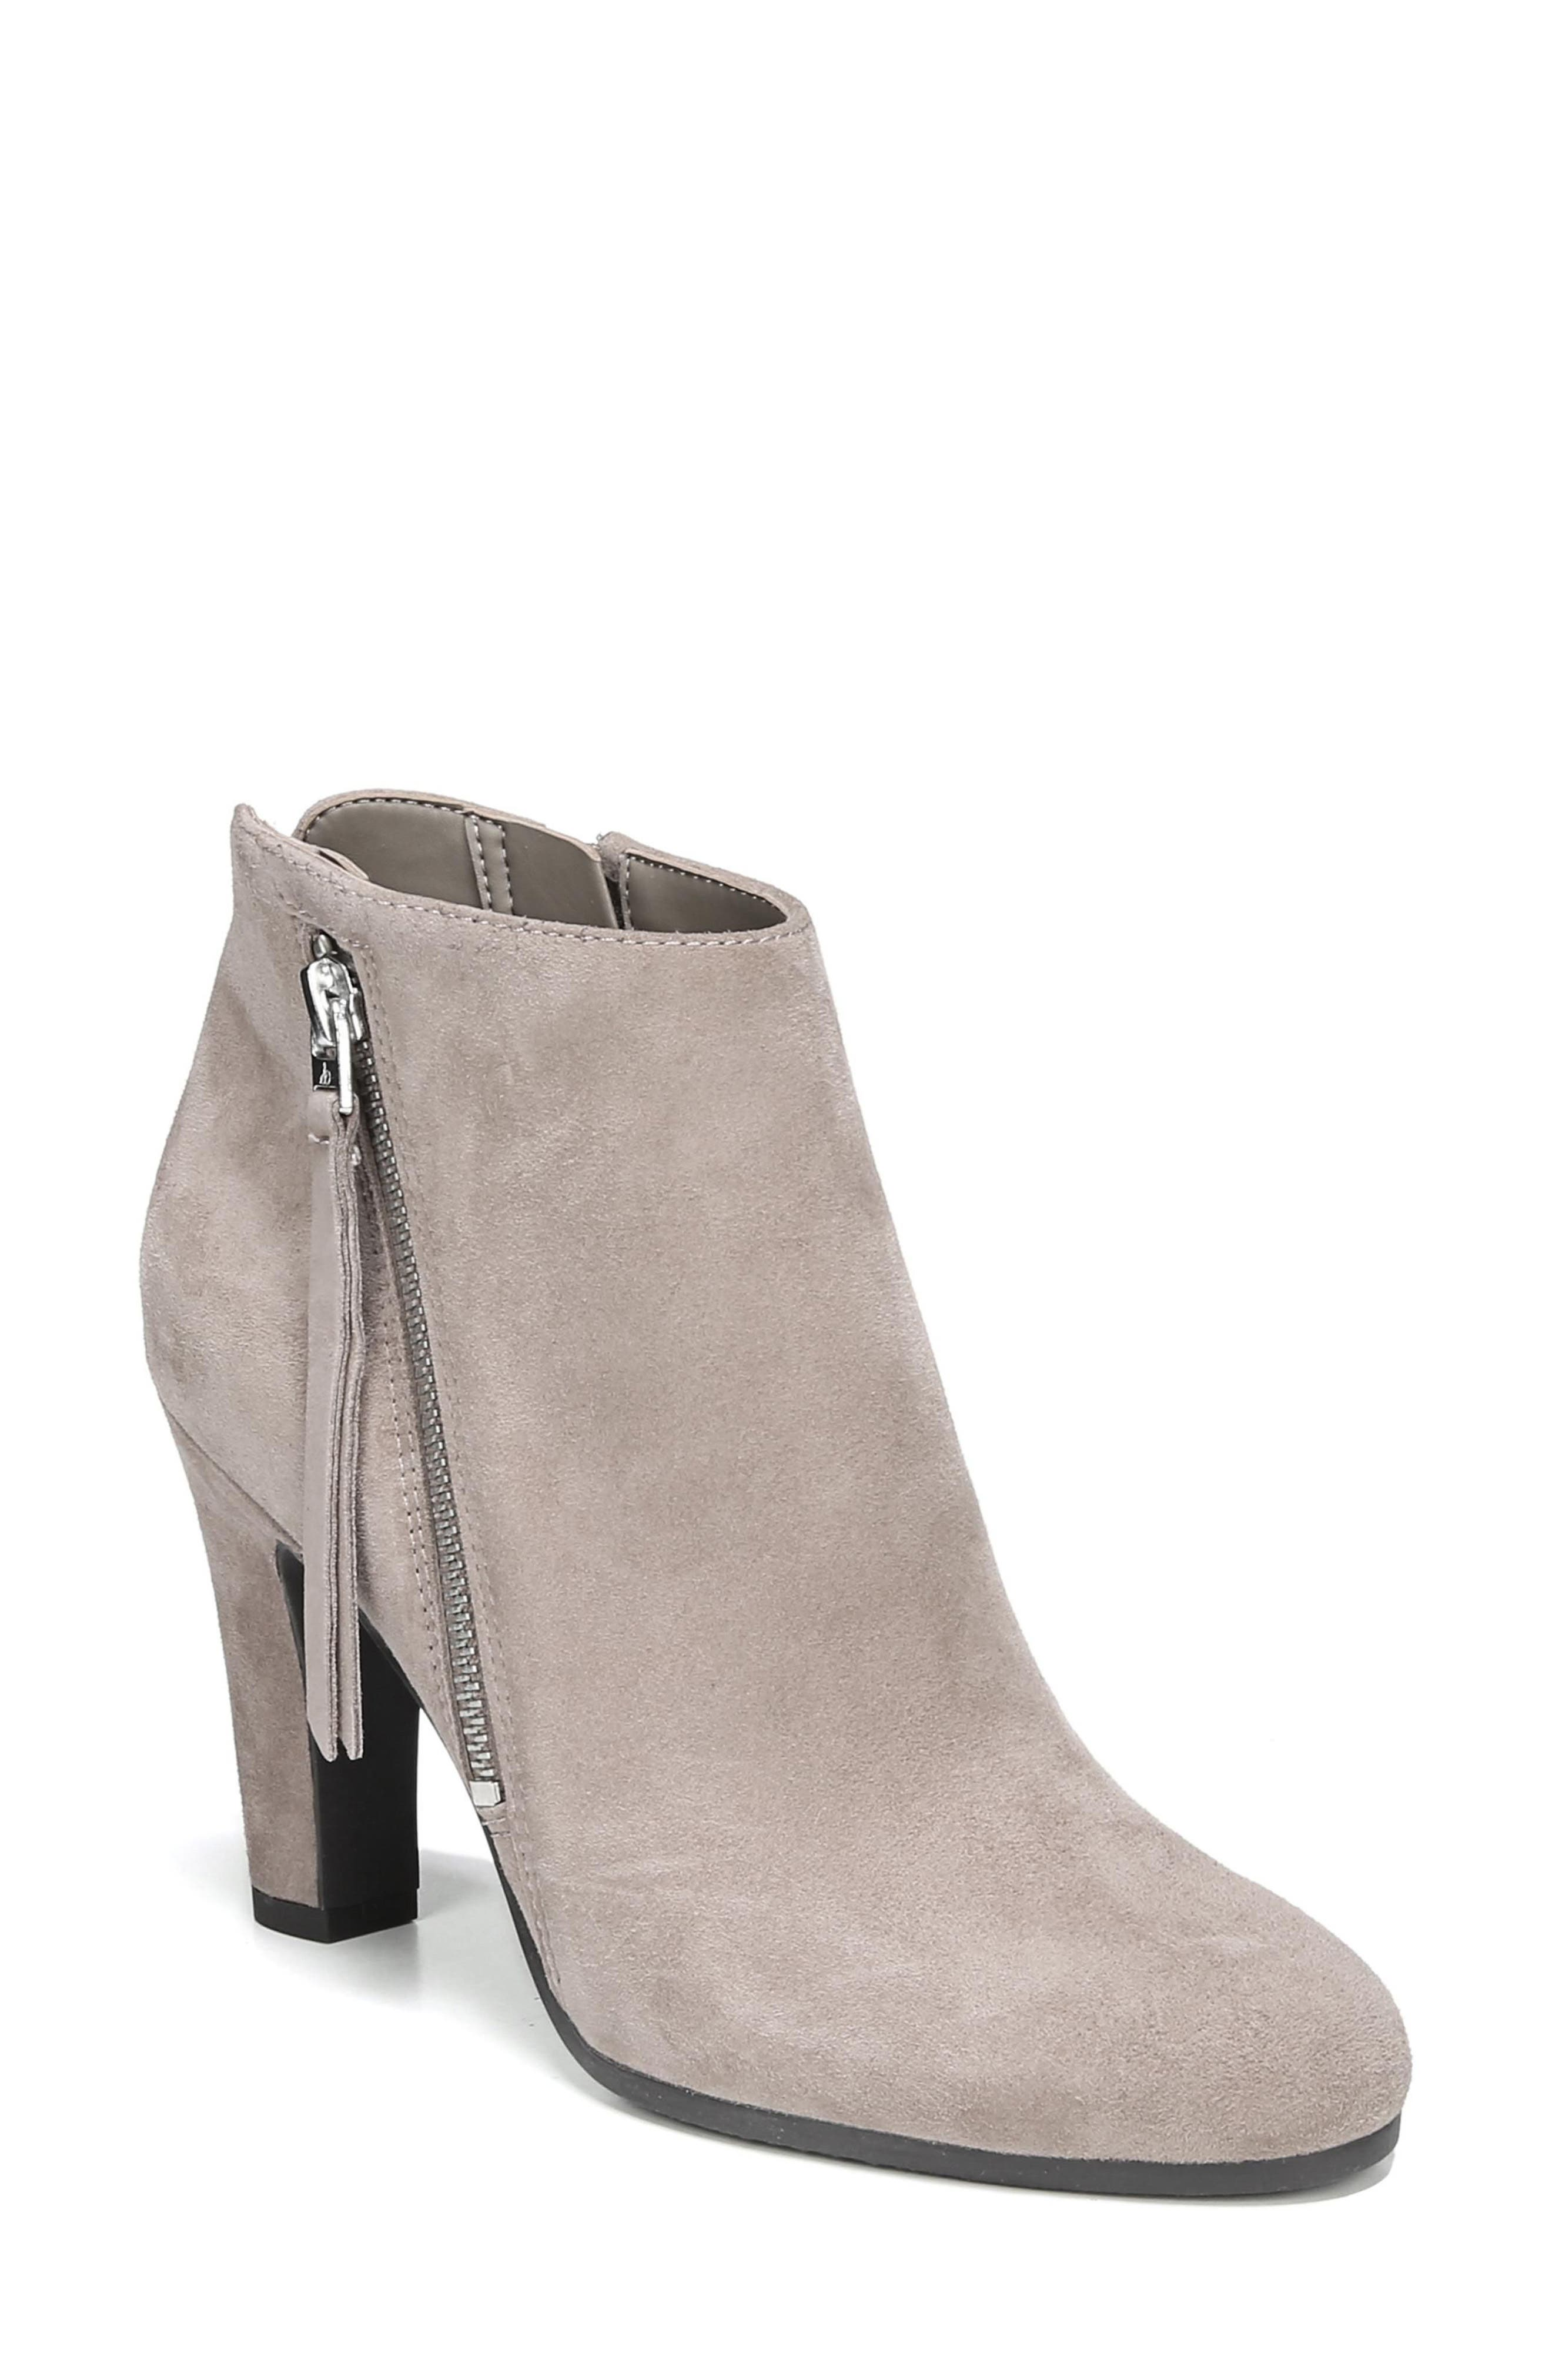 Sadee Angle Zip Bootie,                         Main,                         color, NEW PUTTY SUEDE